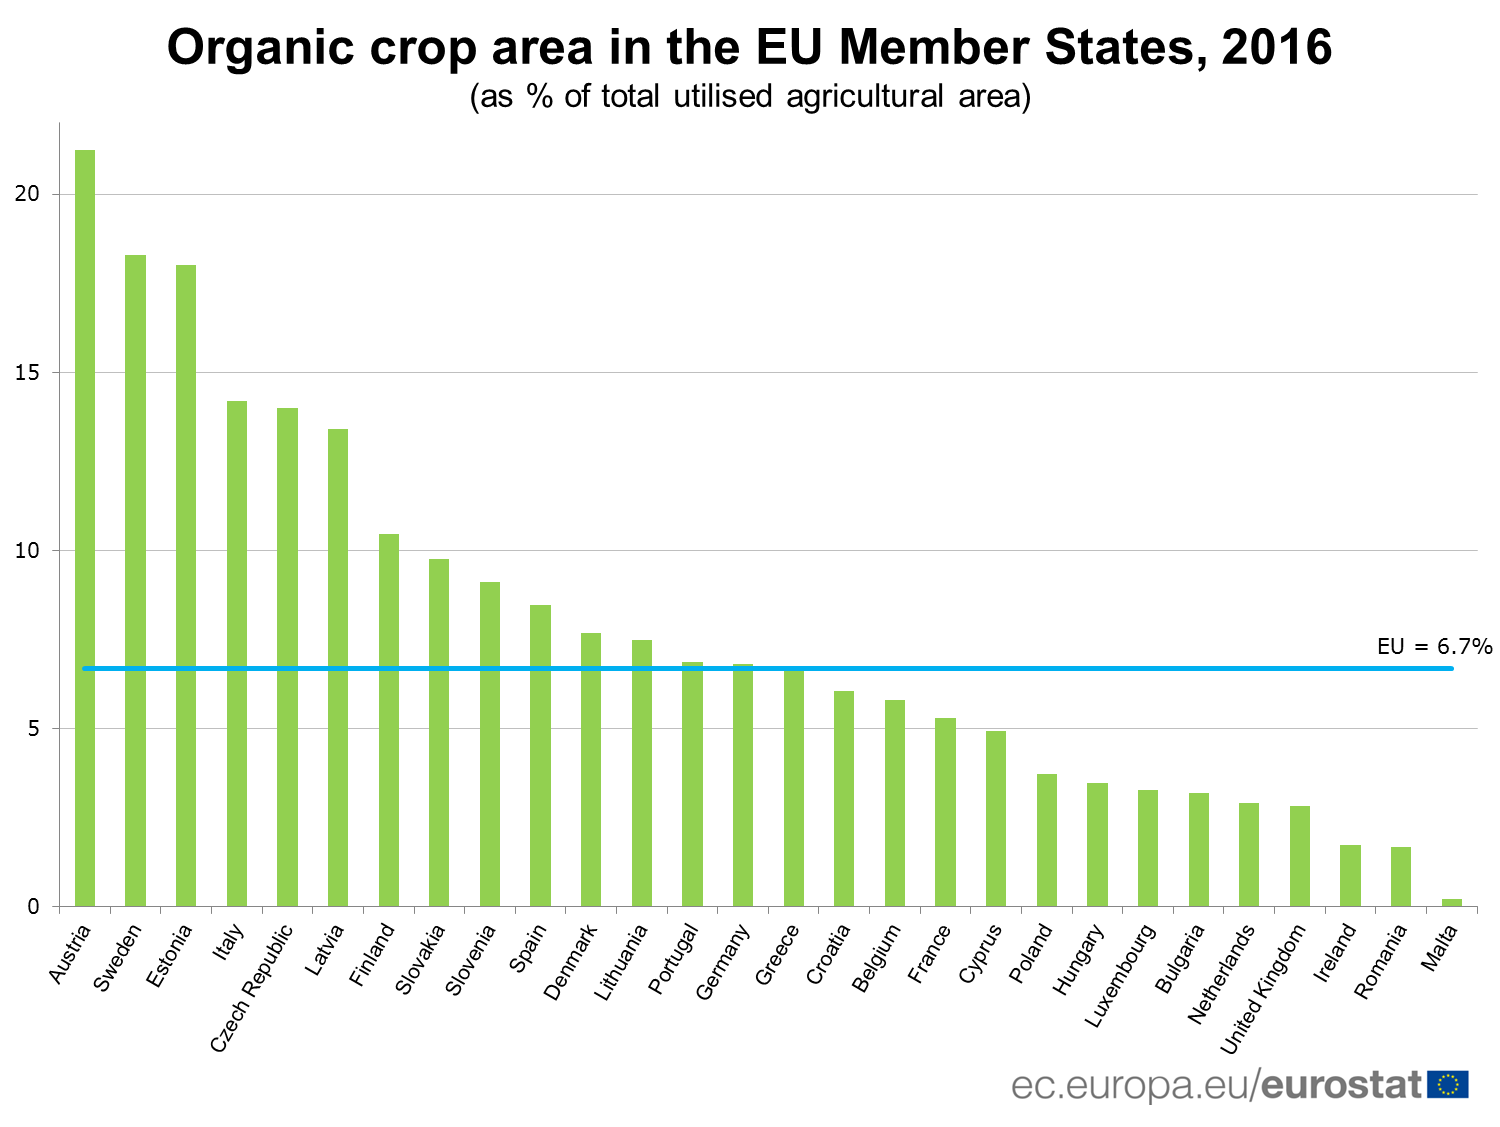 Organic crop area in the EU Member States, 2016